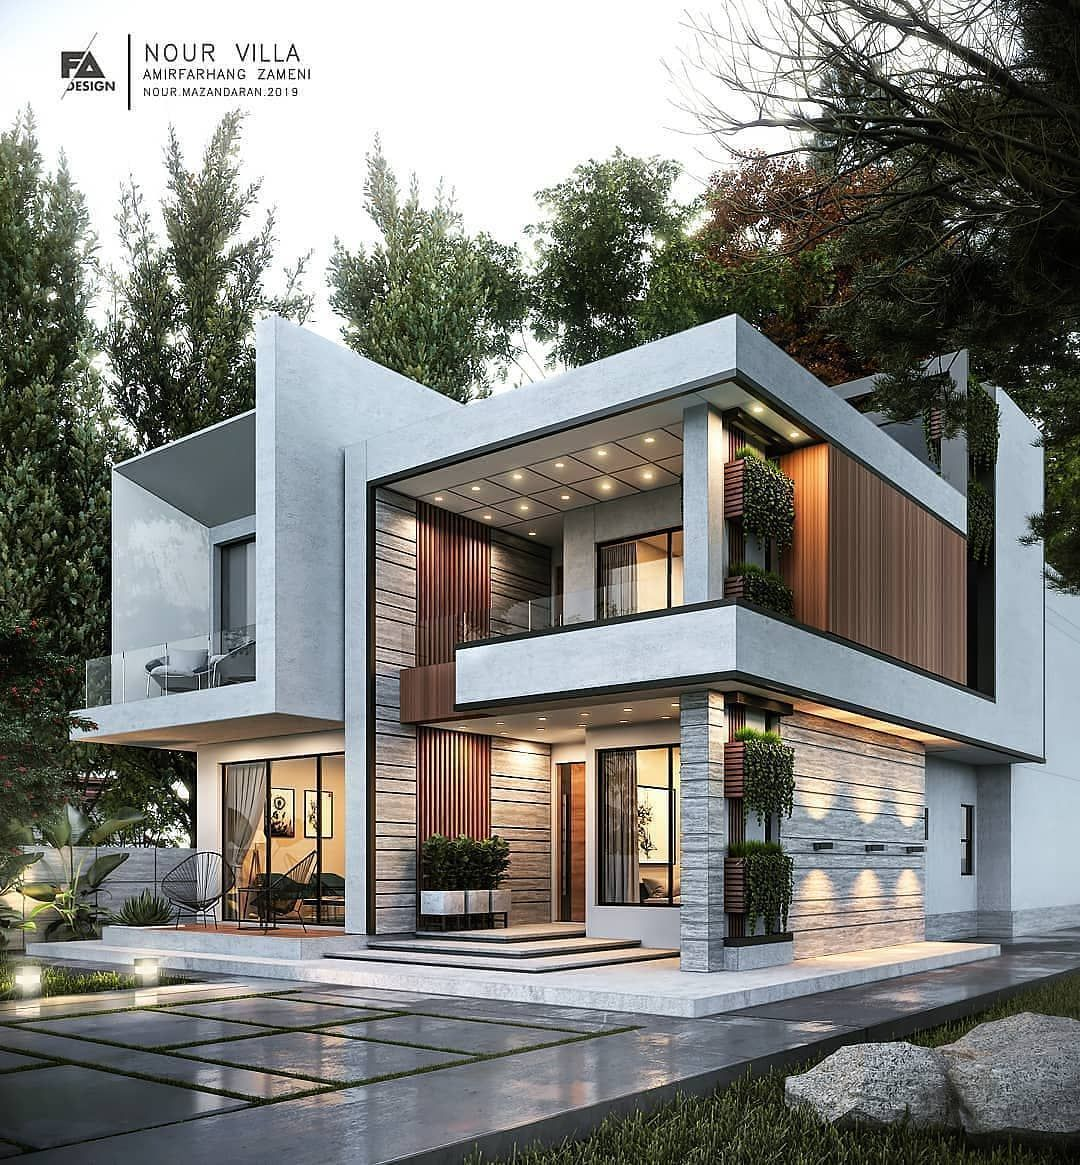 Follow Architecture Crc What Do U Think About This Noor